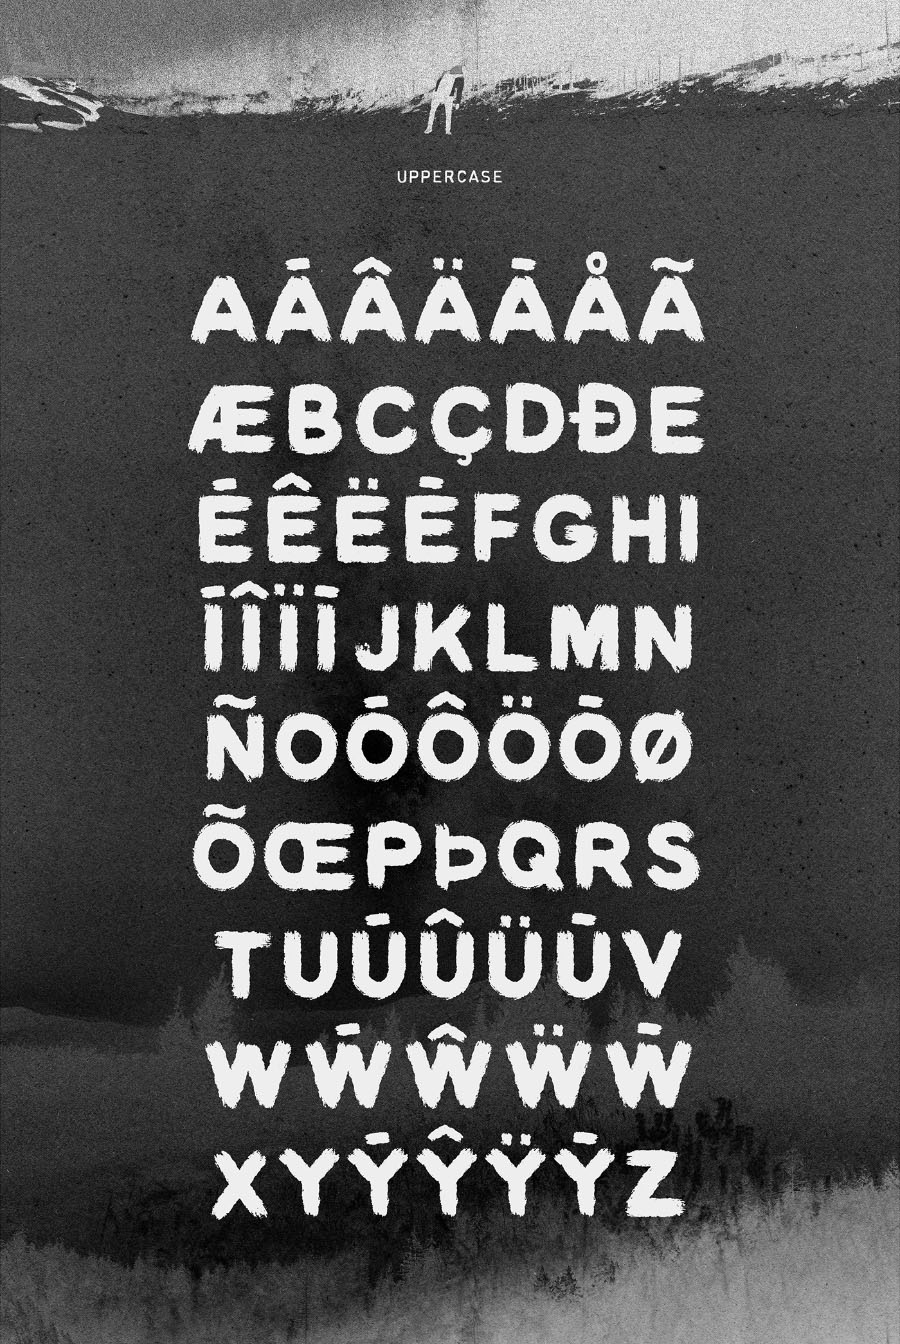 Risque-free-font_Harry-Cresswell_090917_prev02